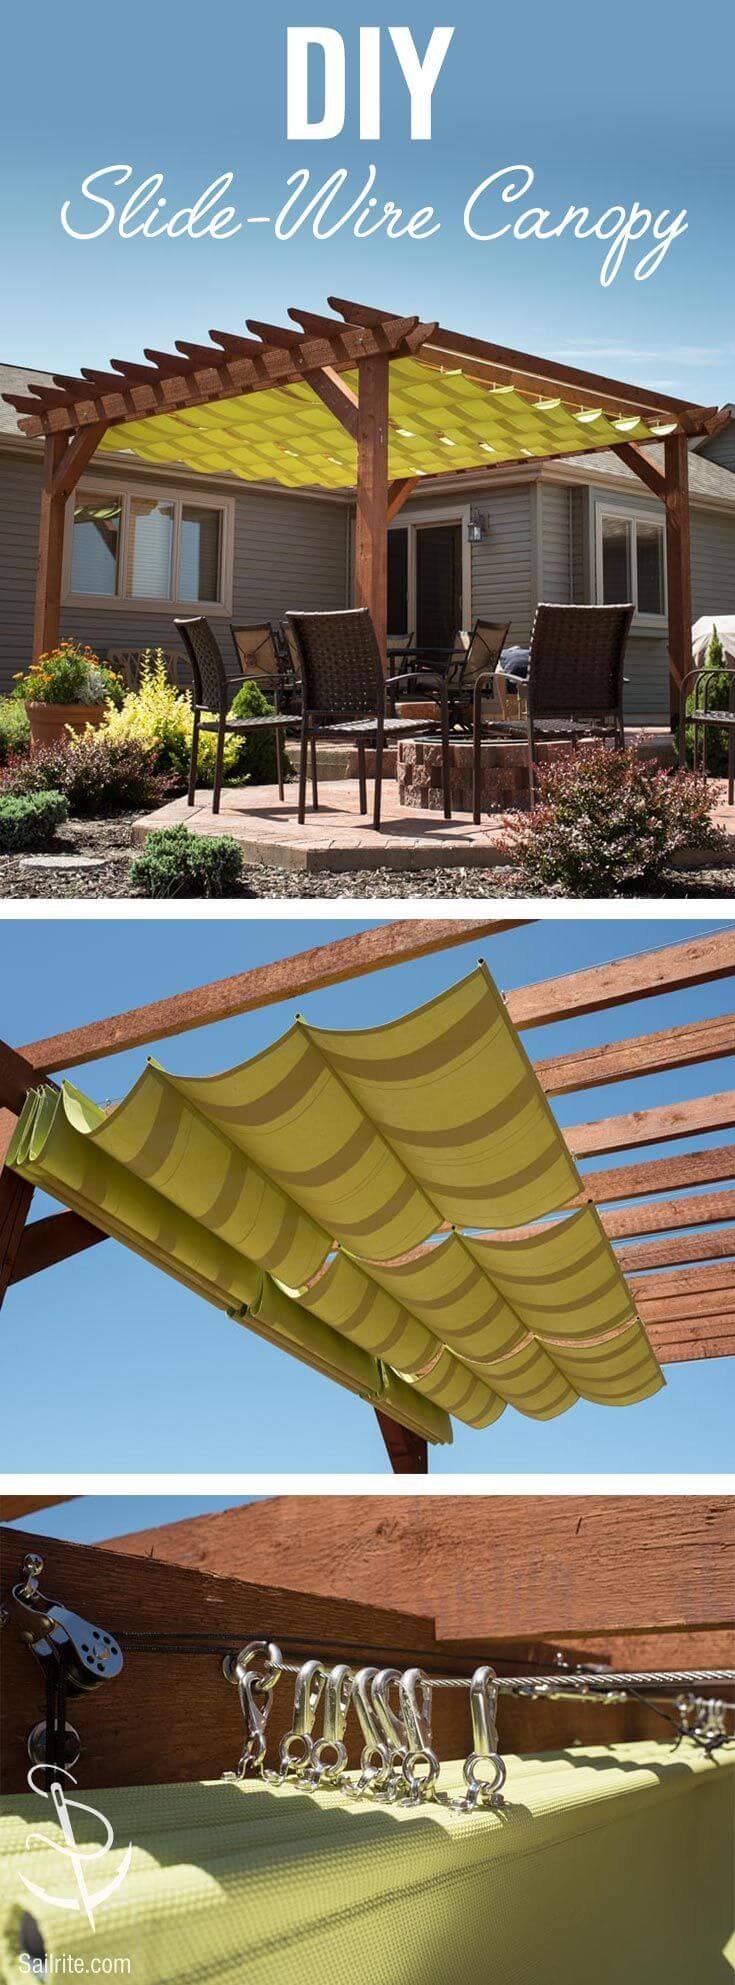 Tuscan Shelter Slide-Wire Canopy